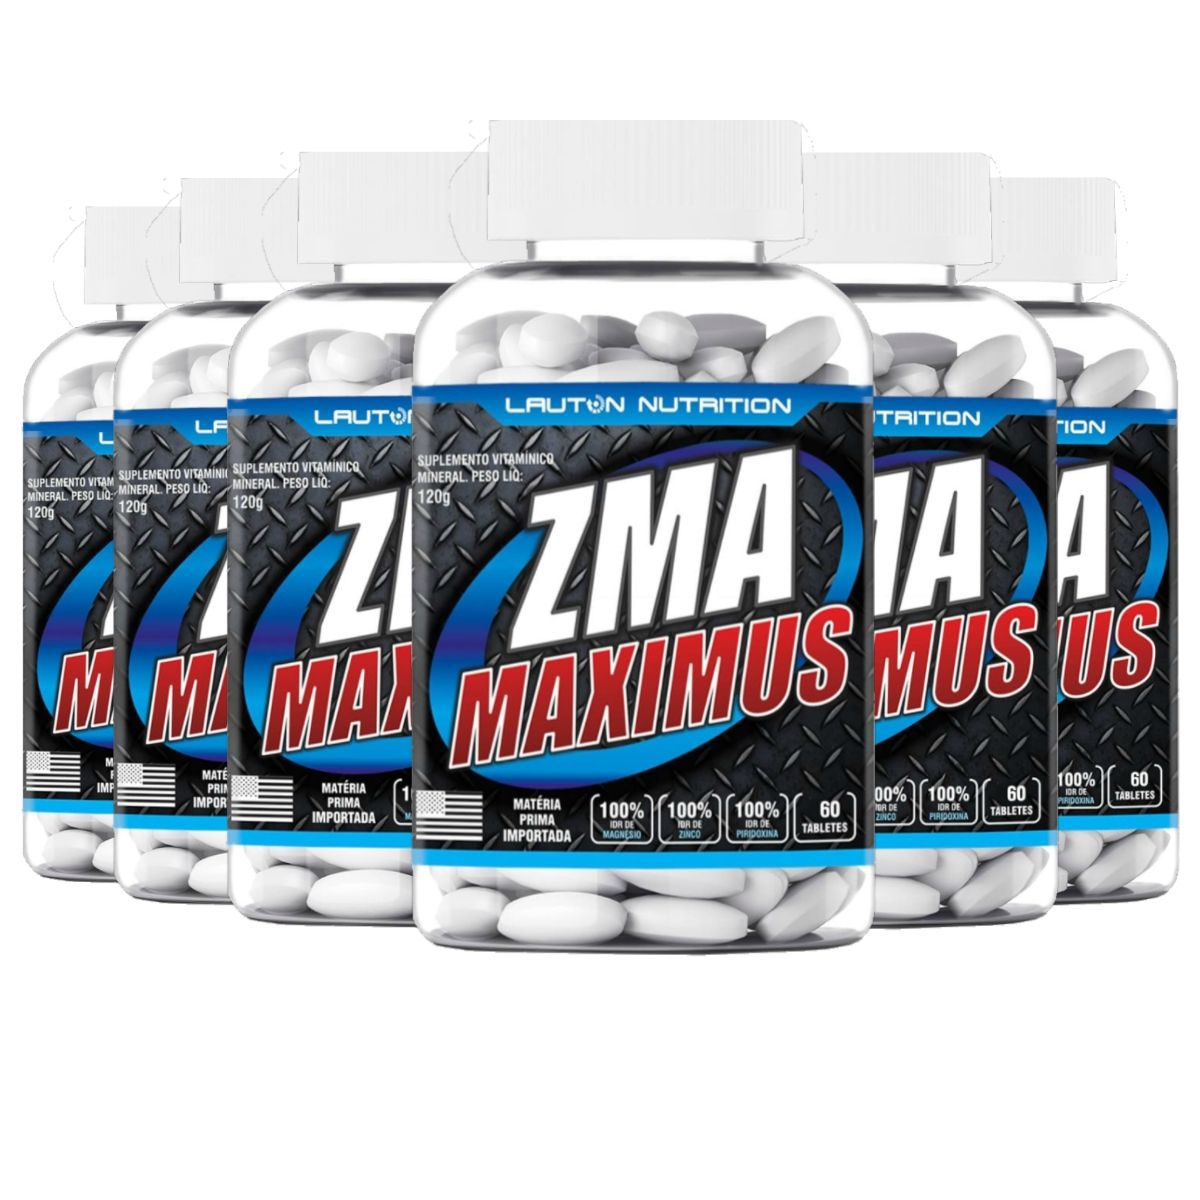 Kit 6 ZMA Maximus Lauton Nutrition - 60 Tablets 1G